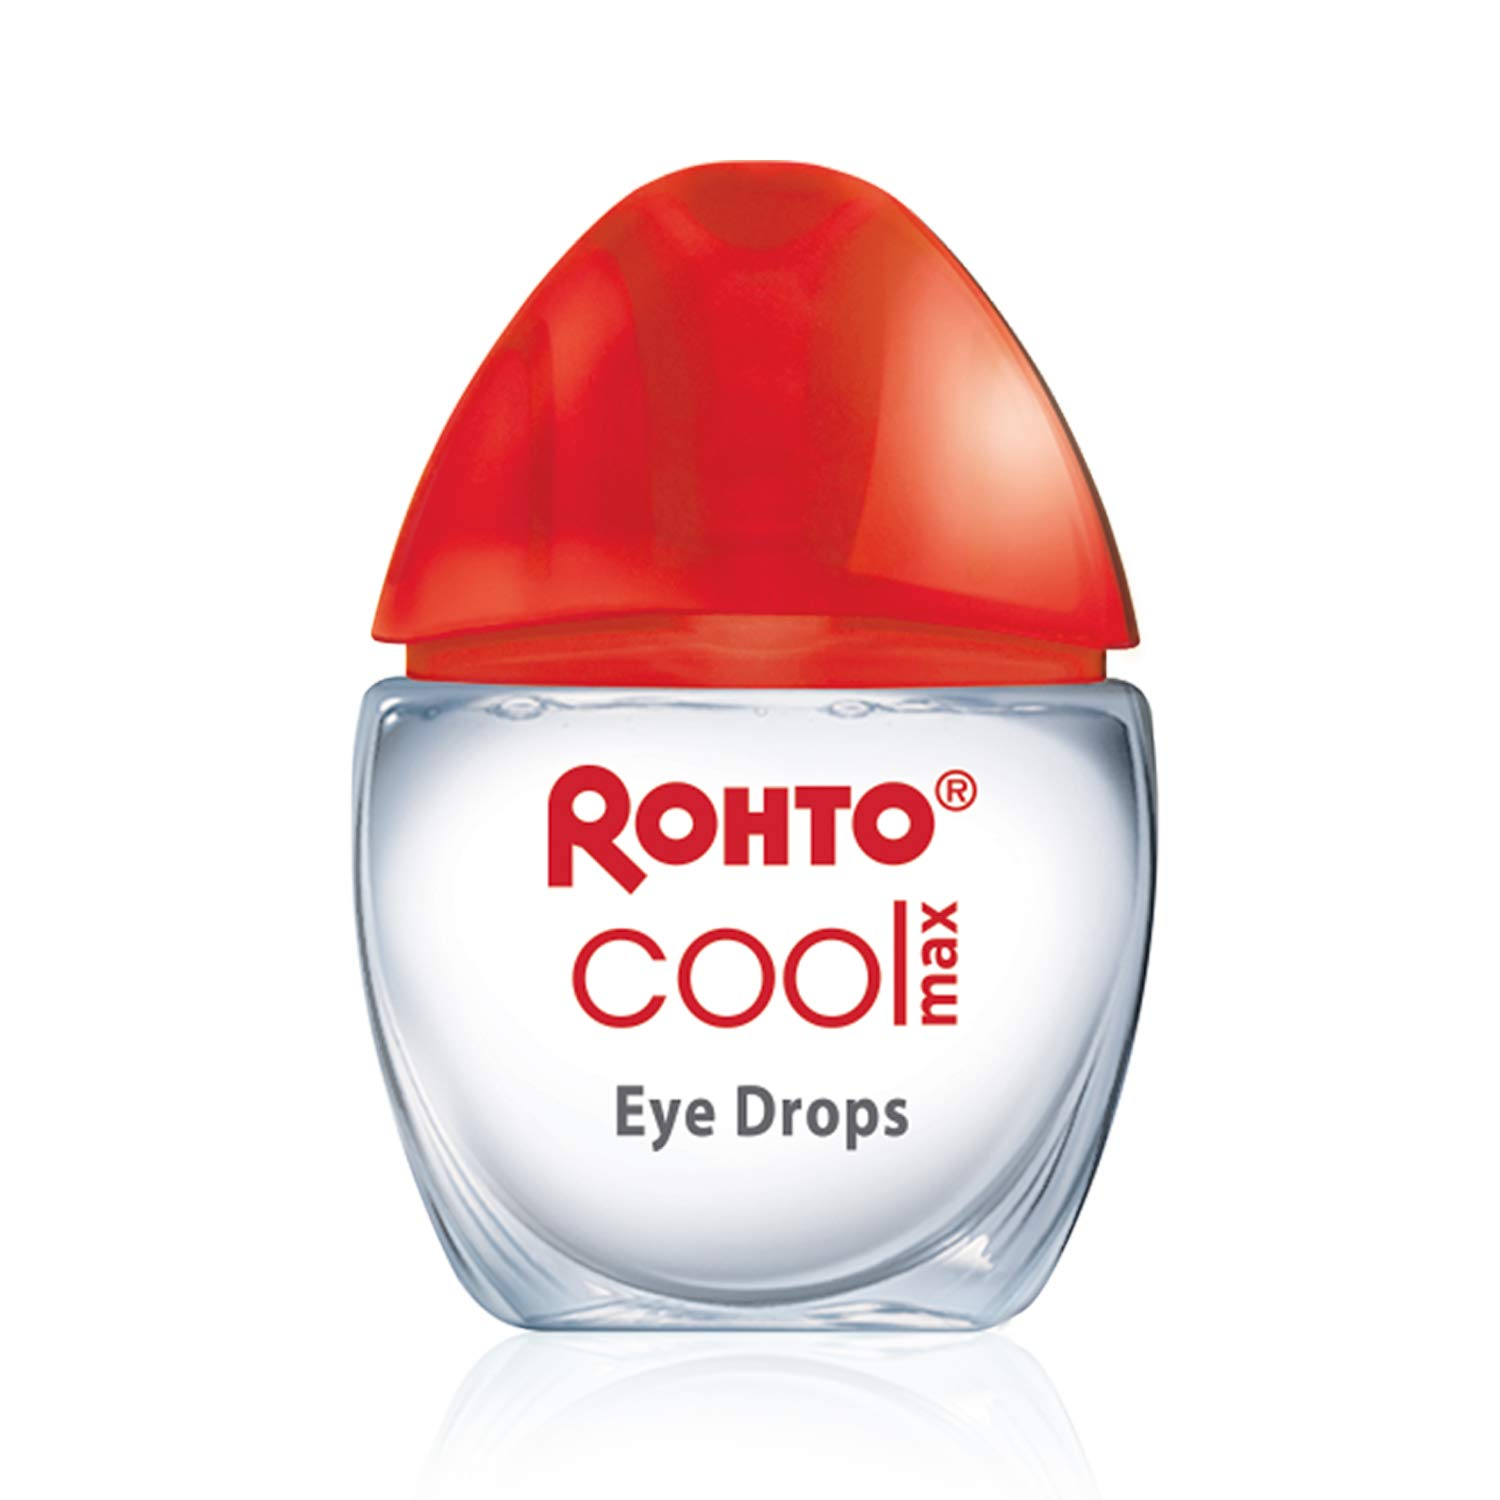 Rohto Cool Max Maximum Redness Relief Cooling Eye Drops, 0.4 Ounce, 3 Count